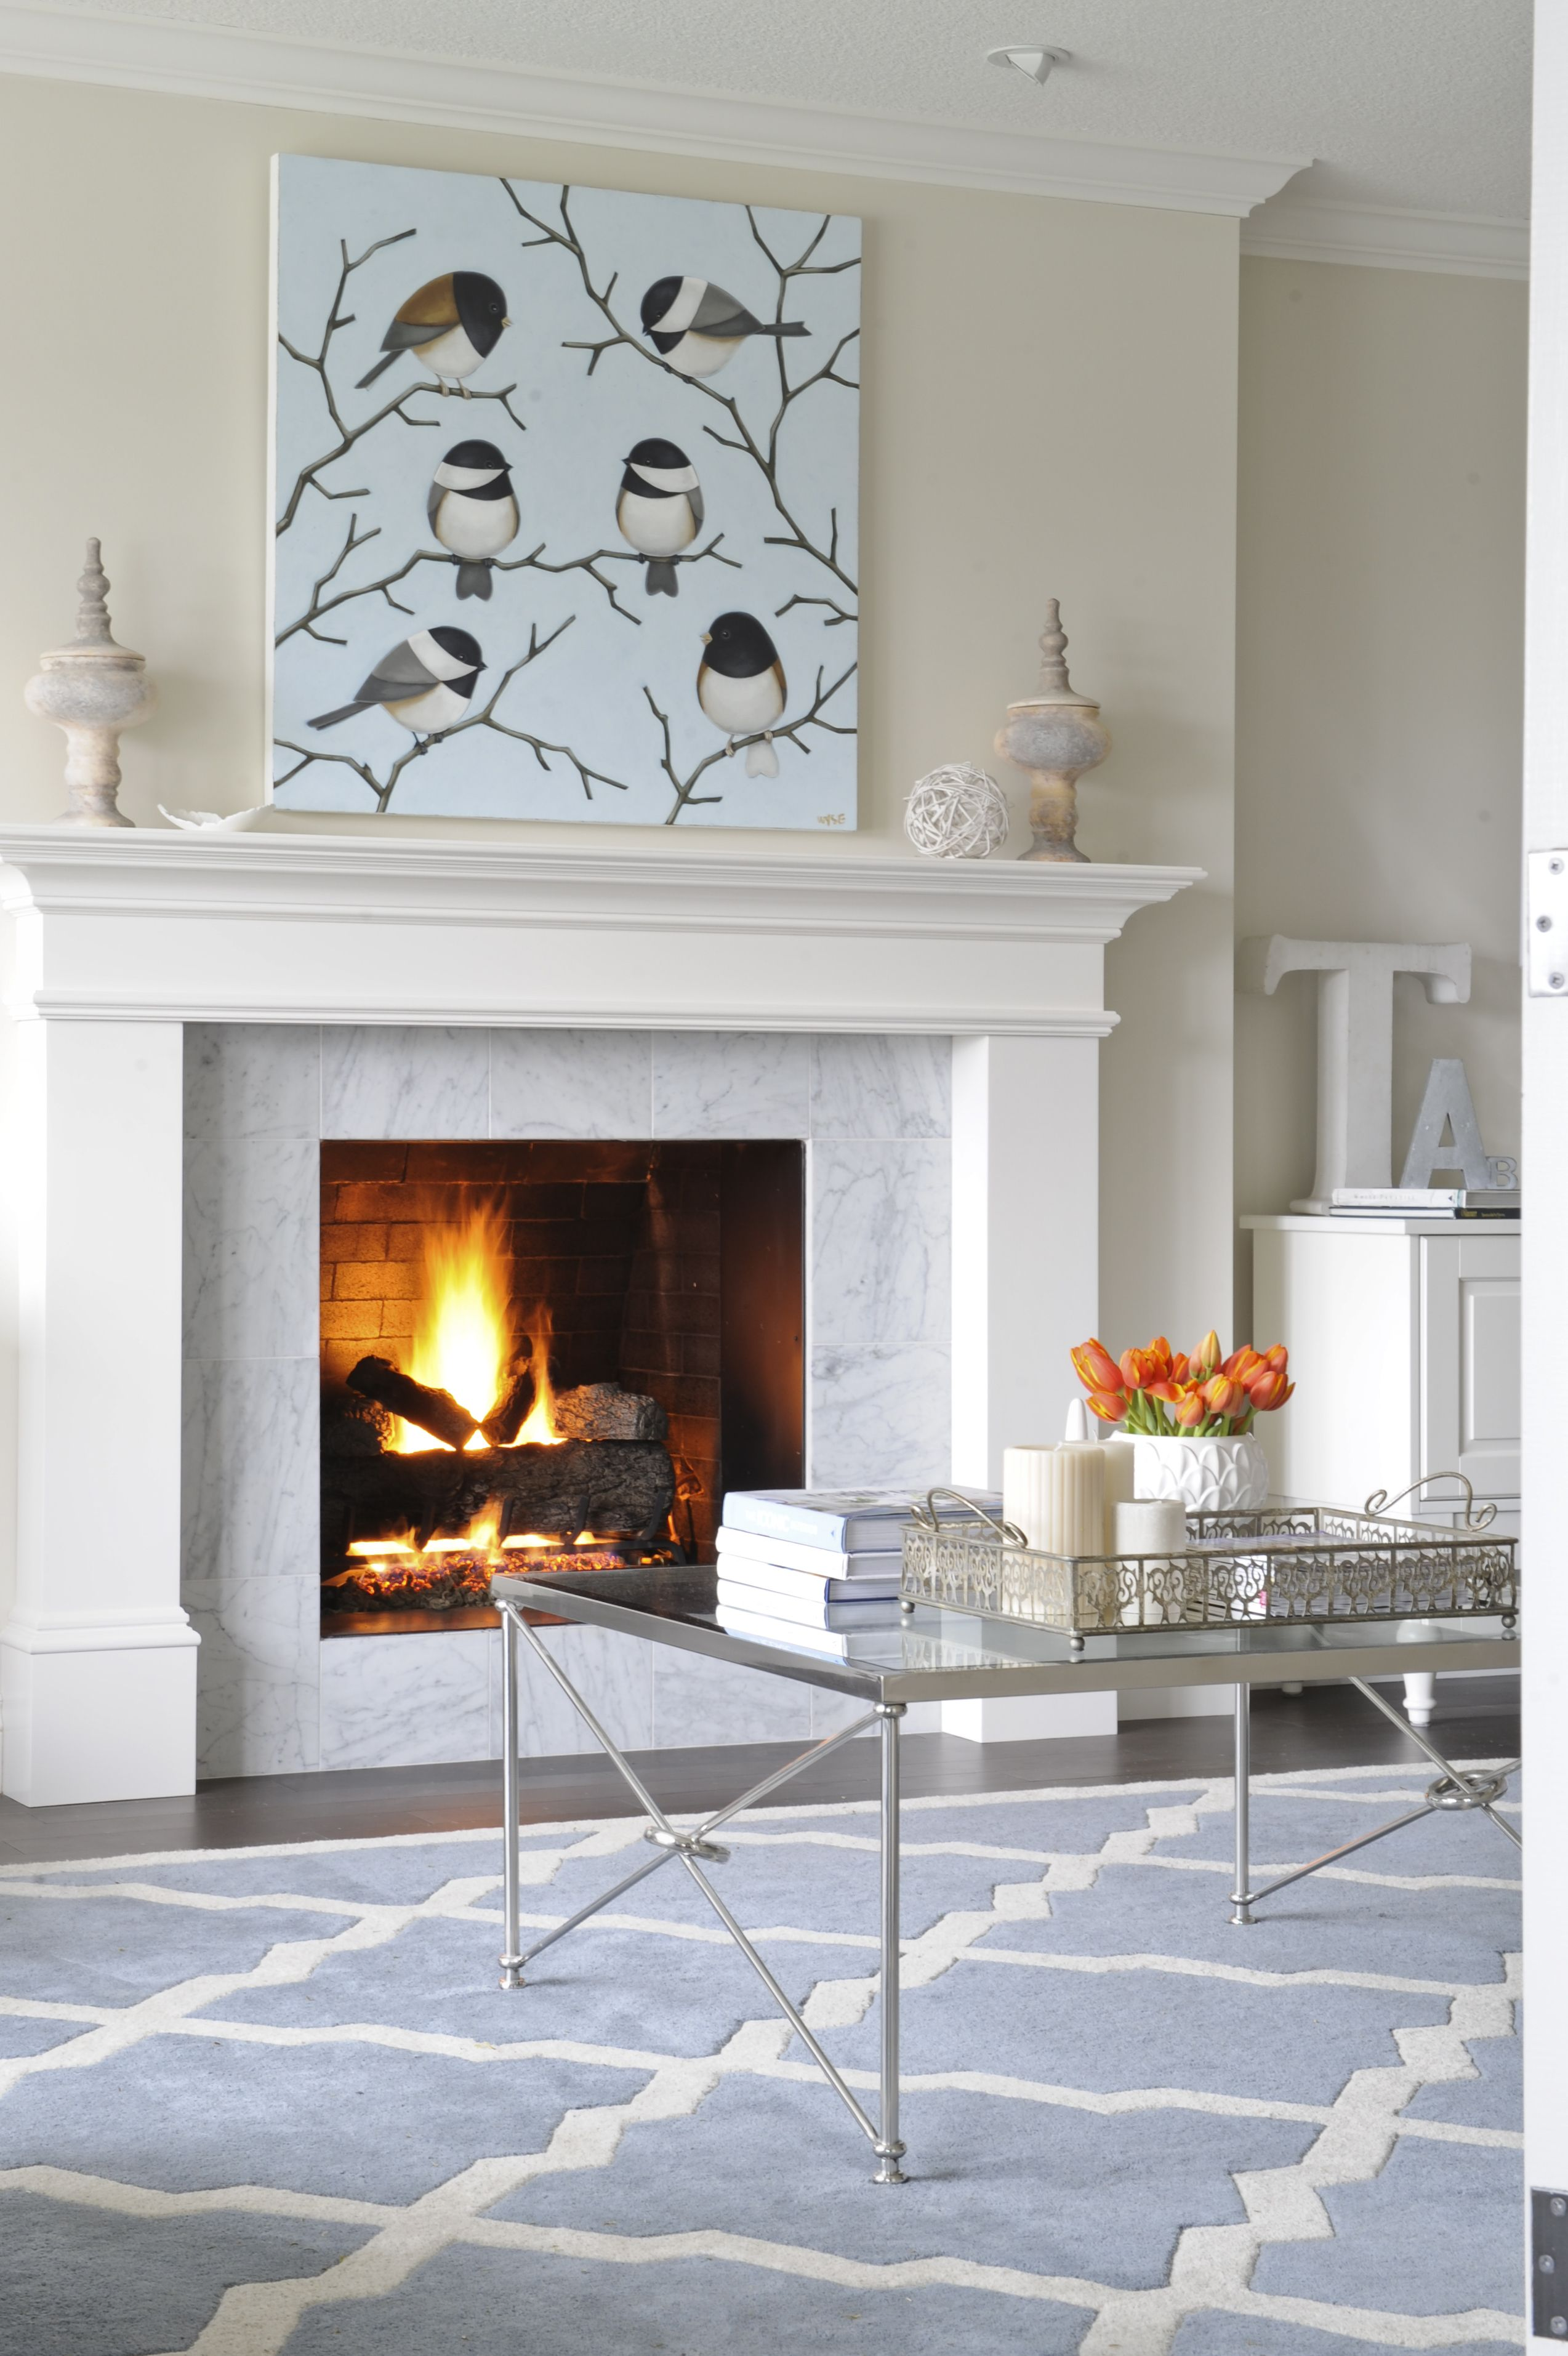 What are some considerations in choosing a fireplace surround design?